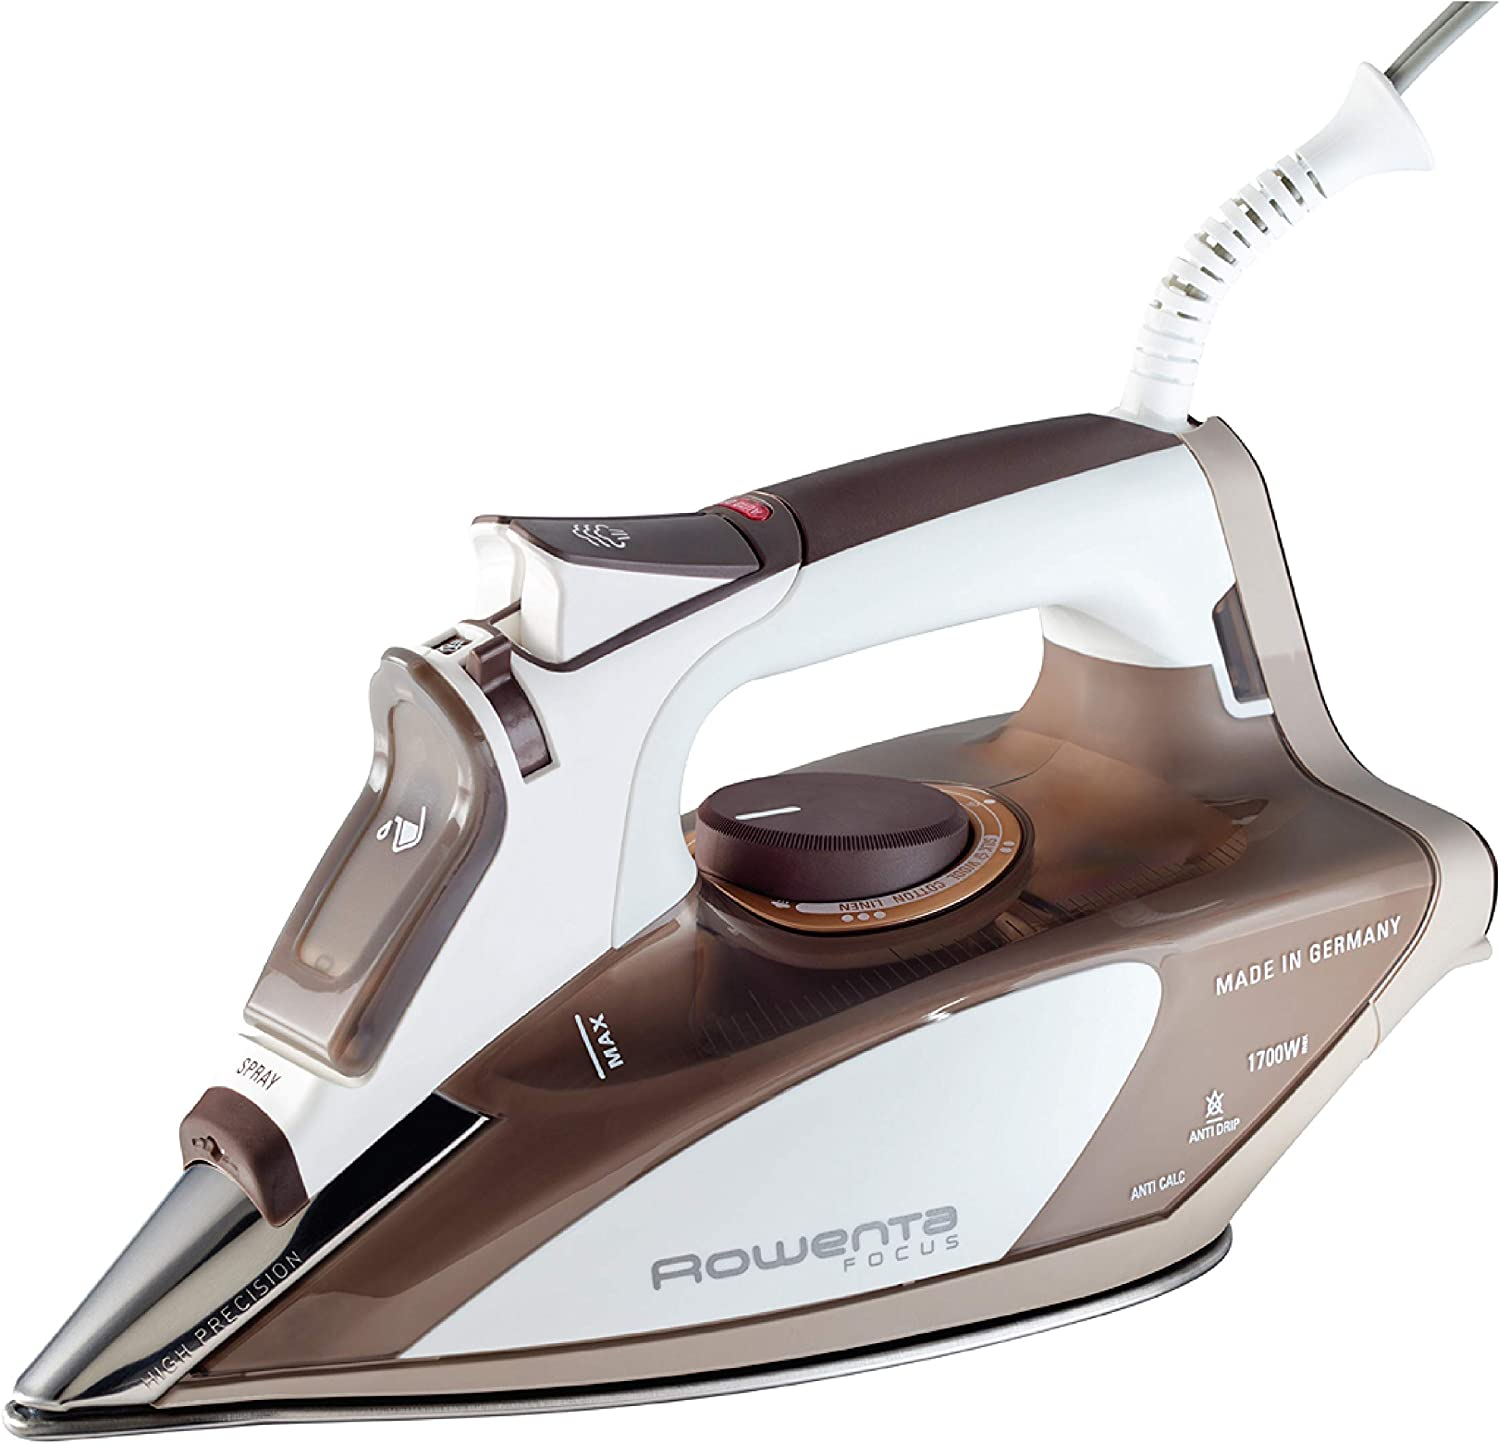 Editor's choice for Best Iron for Quilting: Rowenta DW5080 1700 Watt Steam Iron